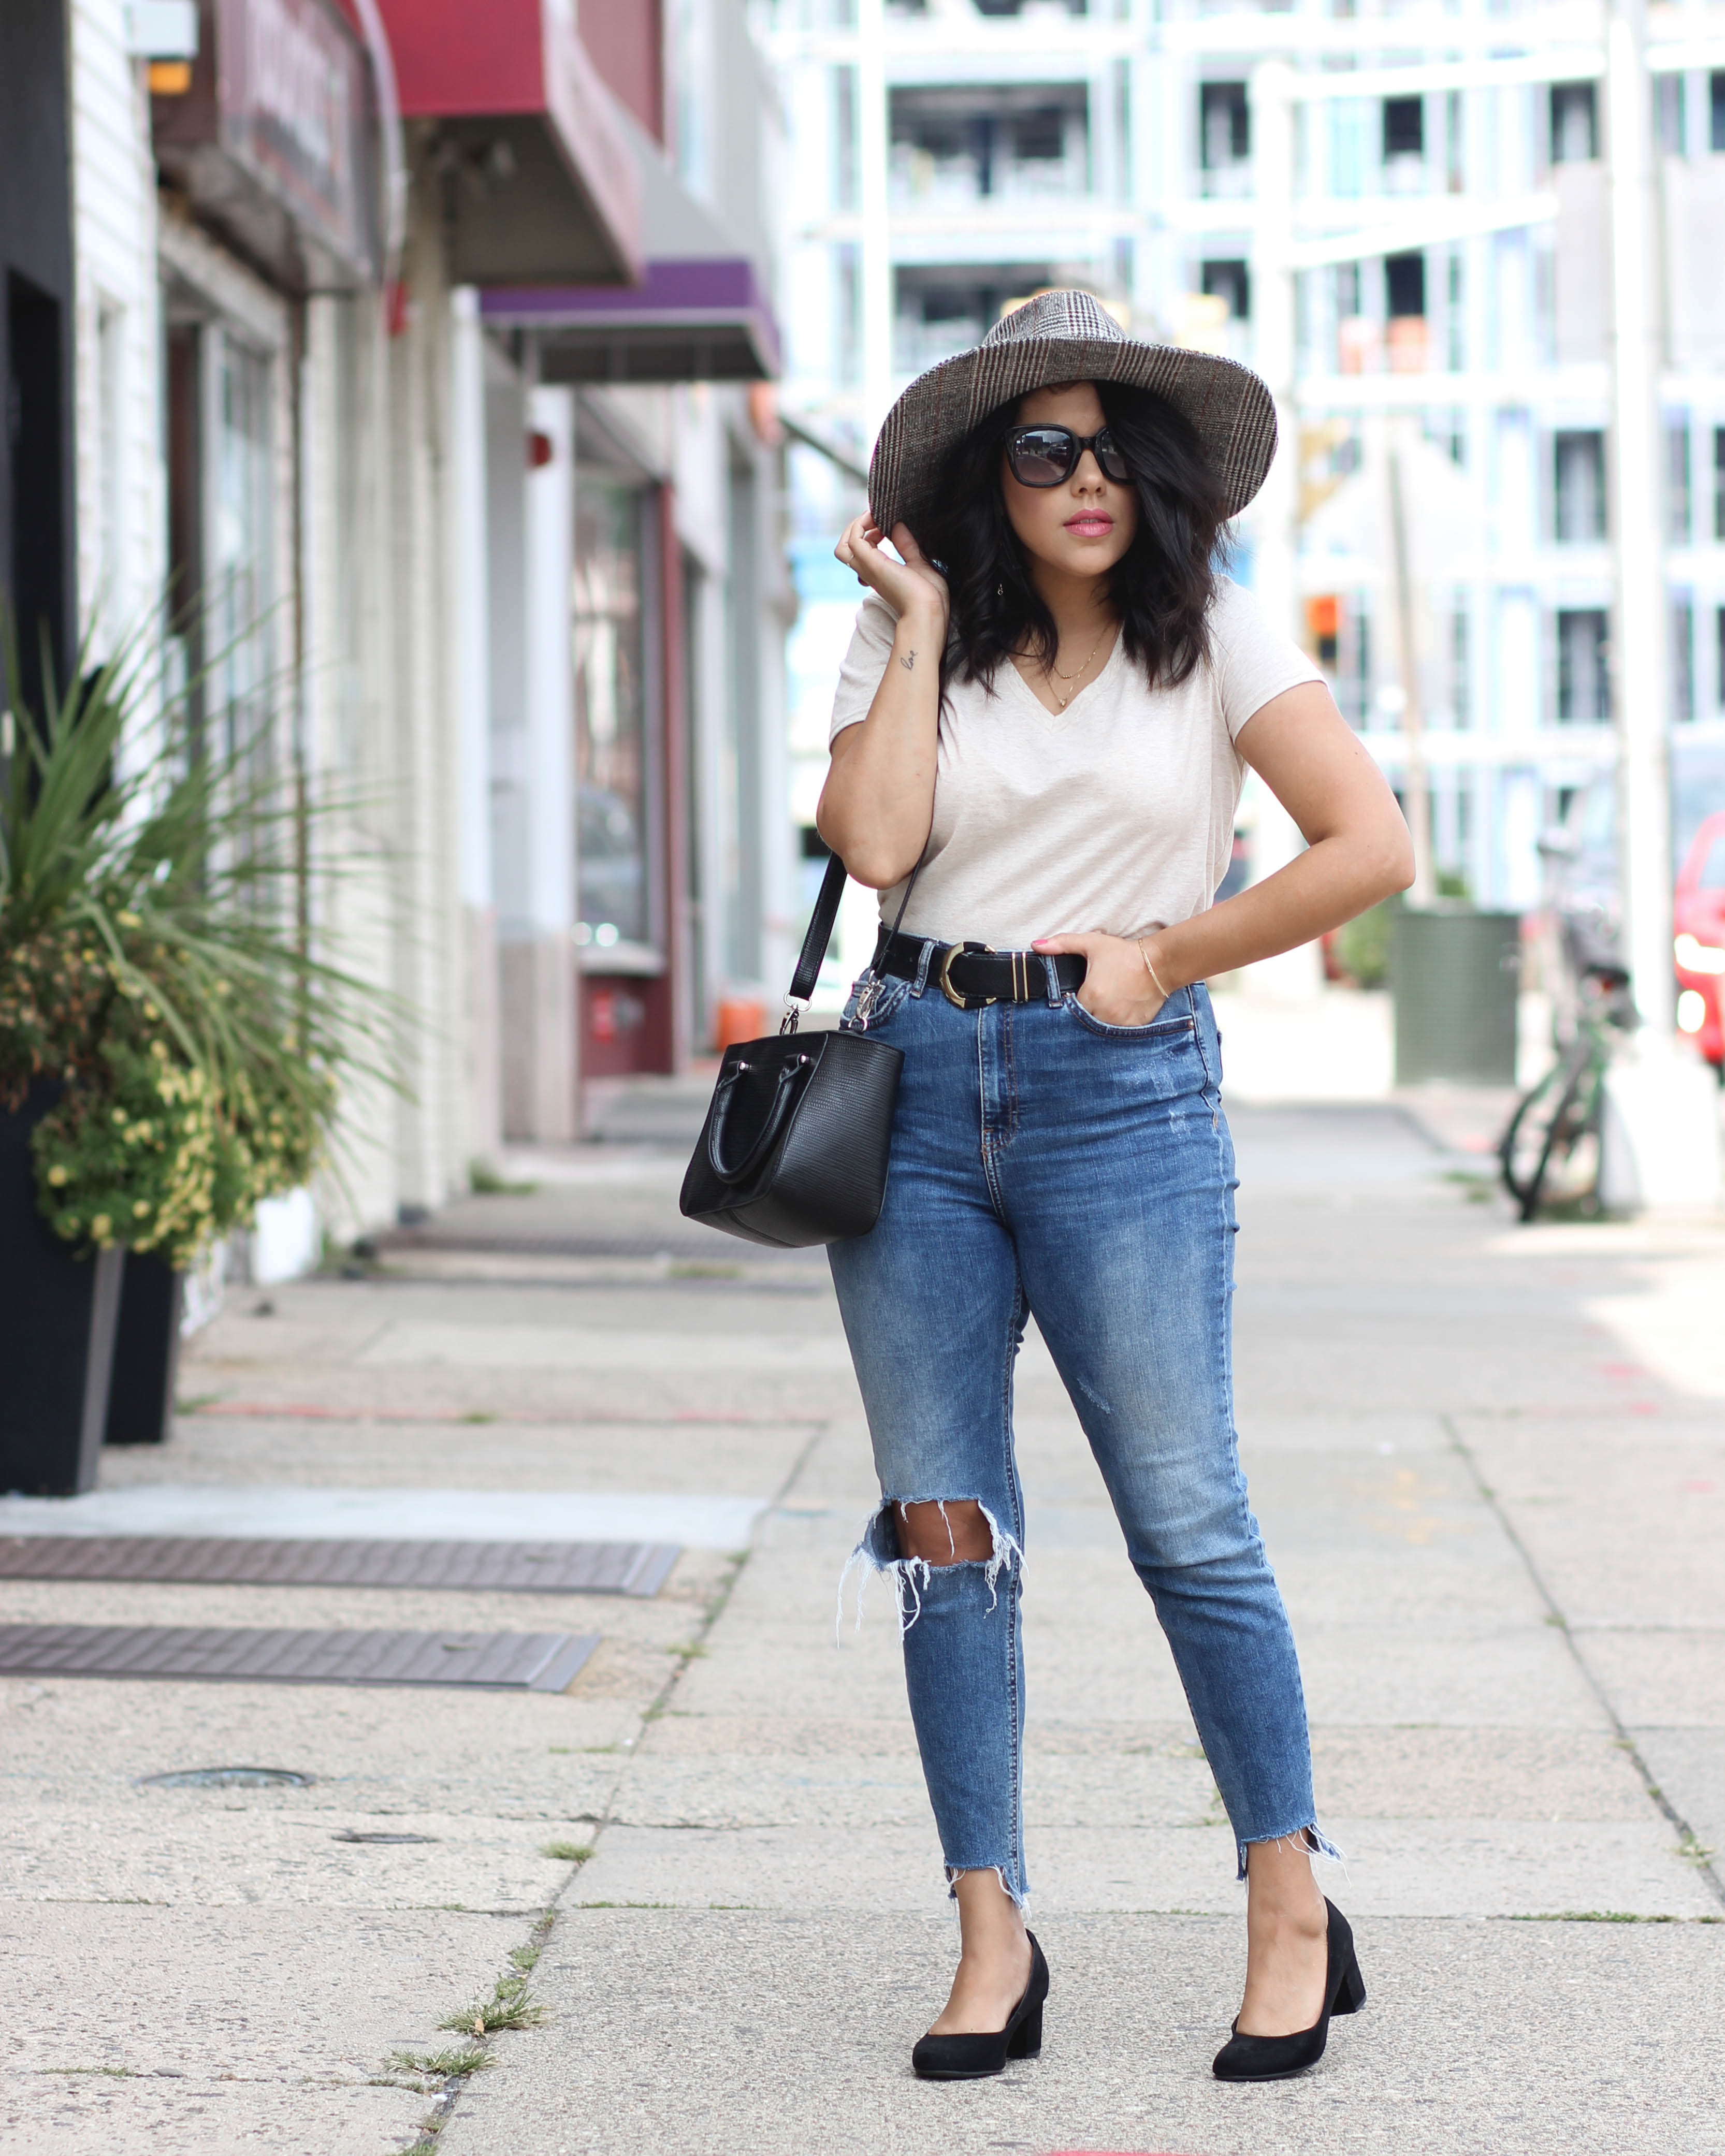 lifestyle blogger naty michele street style in wide brim hat and denim